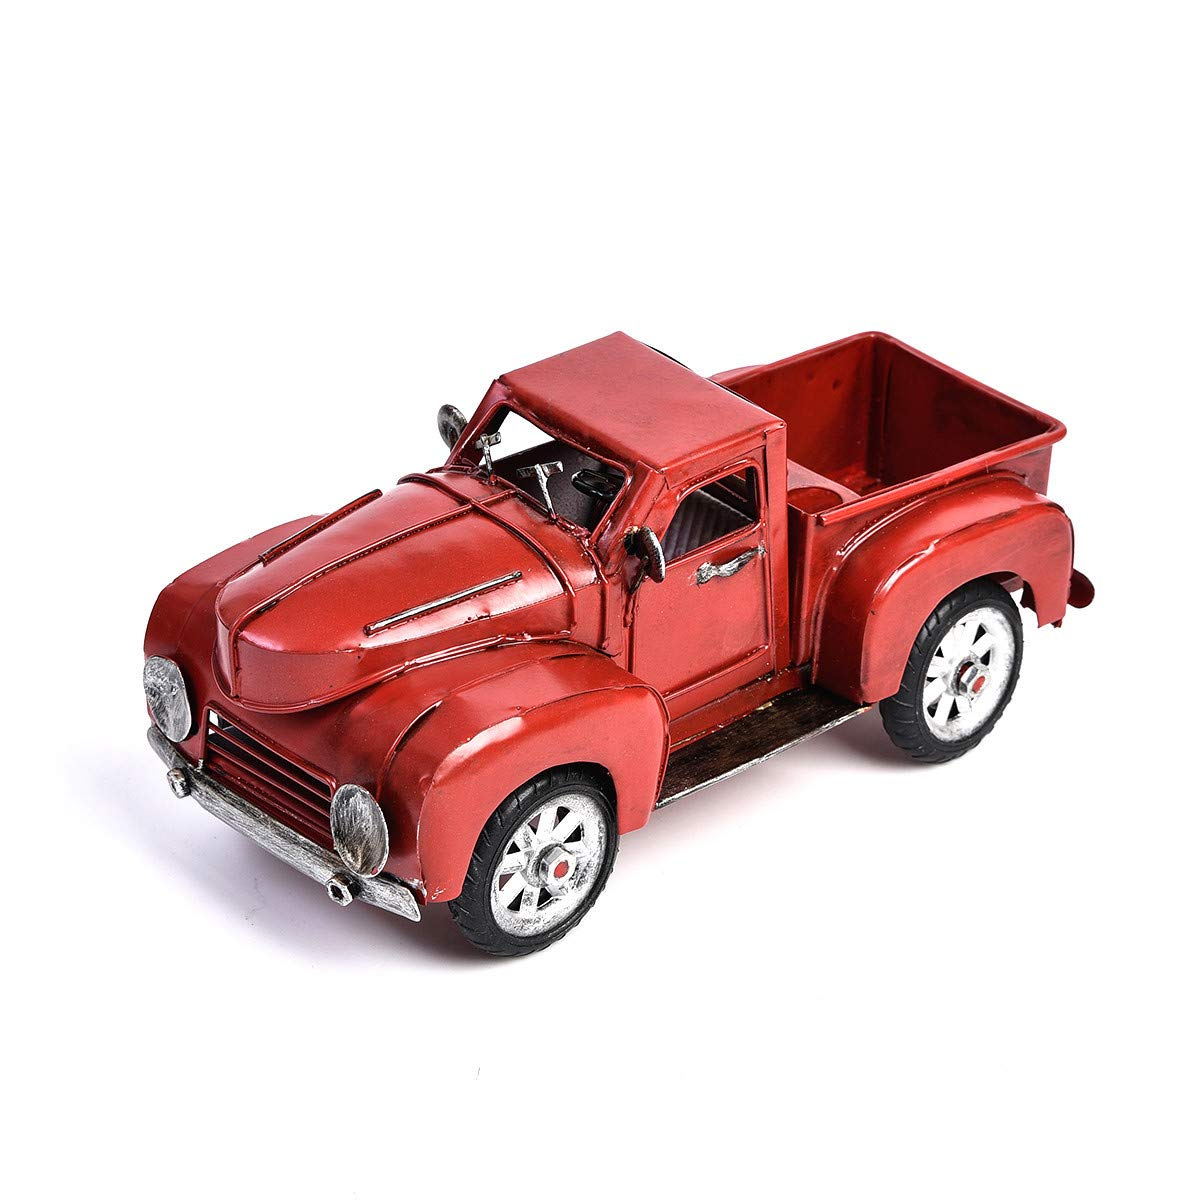 Vintage Red Metal Truck QBOSO Pick-Up Die Cast Collectible Truck Home Decor,Ornament ,Desktop Decoration by QBOSO